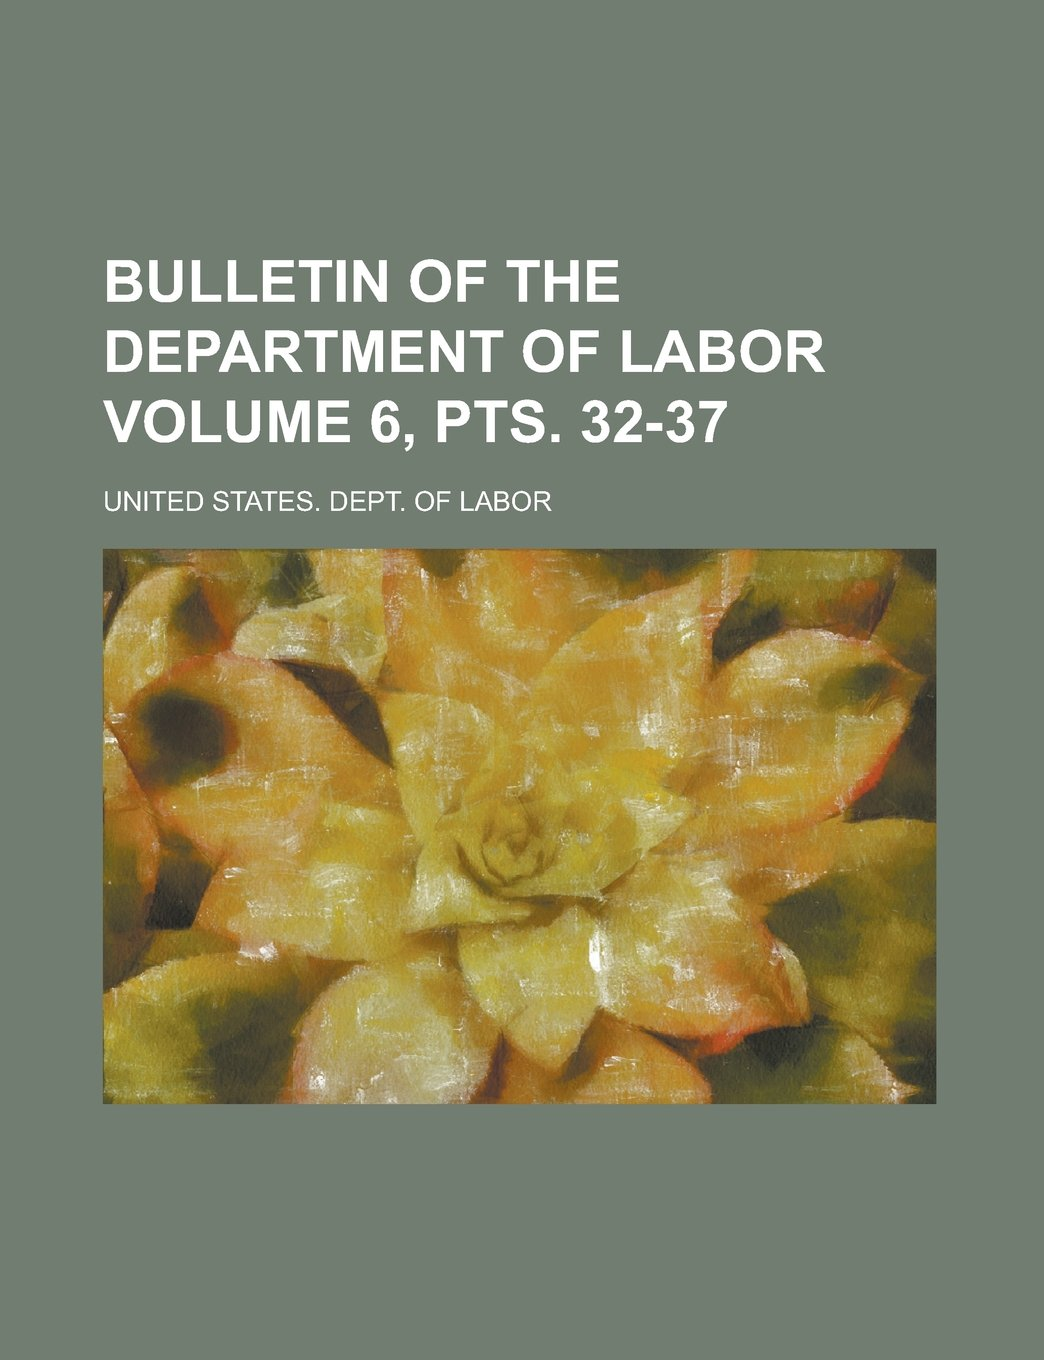 Bulletin of the Department of Labor Volume 6, pts. 32-37 PDF